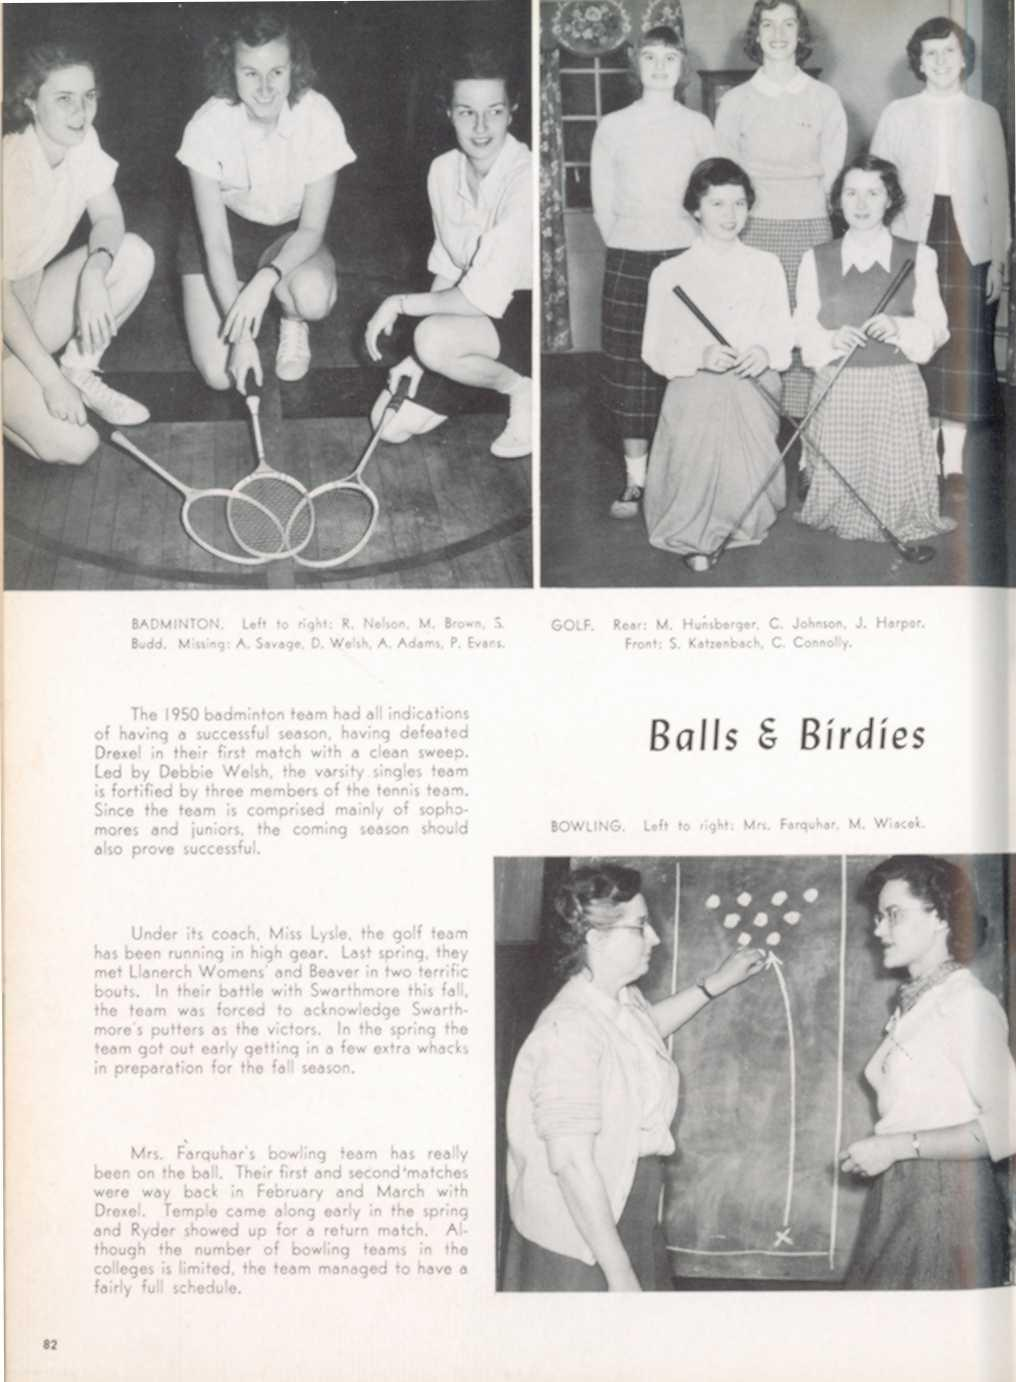 omores hmore's lthough Wiacek Budd BADMINTON: Missing: Left A to Savage, right:; D R Welsh, Nelson, A Adams, M Brown, P Evans S The 1950 badminton team had all indication s of having a successful